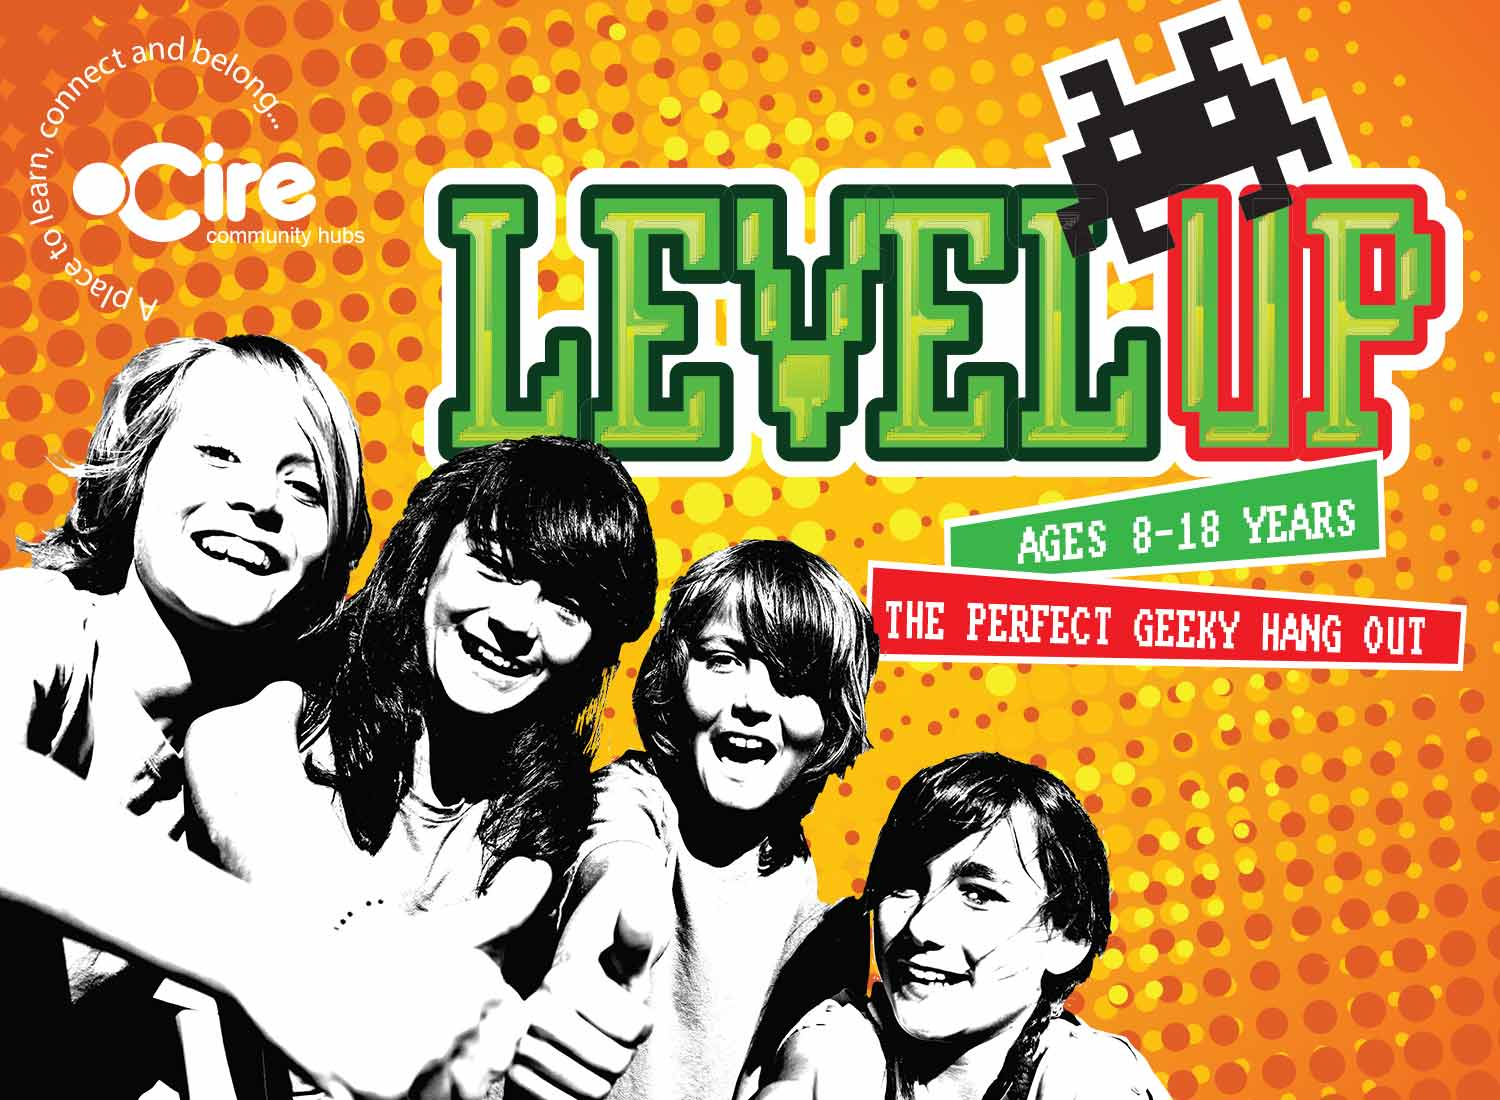 Level up - for young people aged 8-18 years